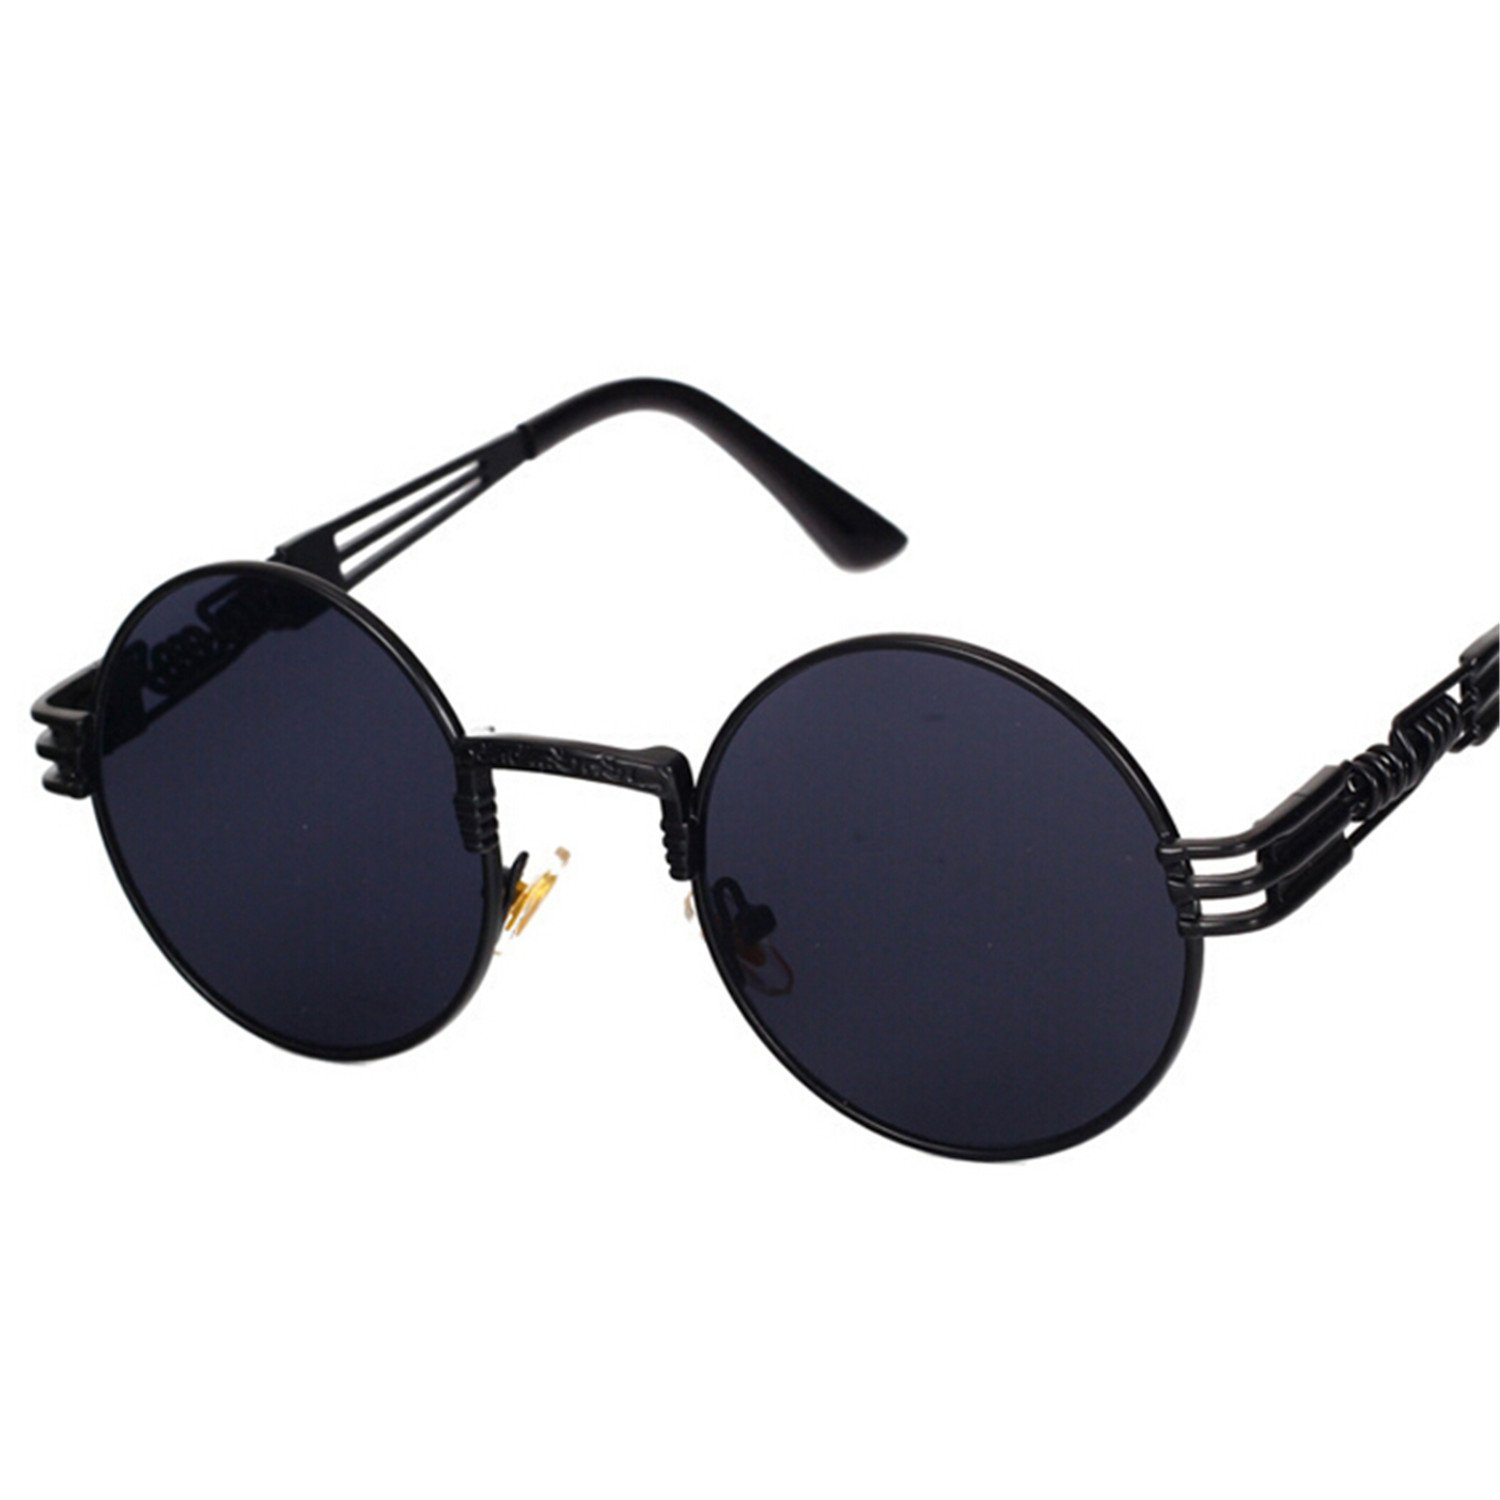 Amazon.com: Vintage Retro Steampunk Mirror Sunglasses Gold ...